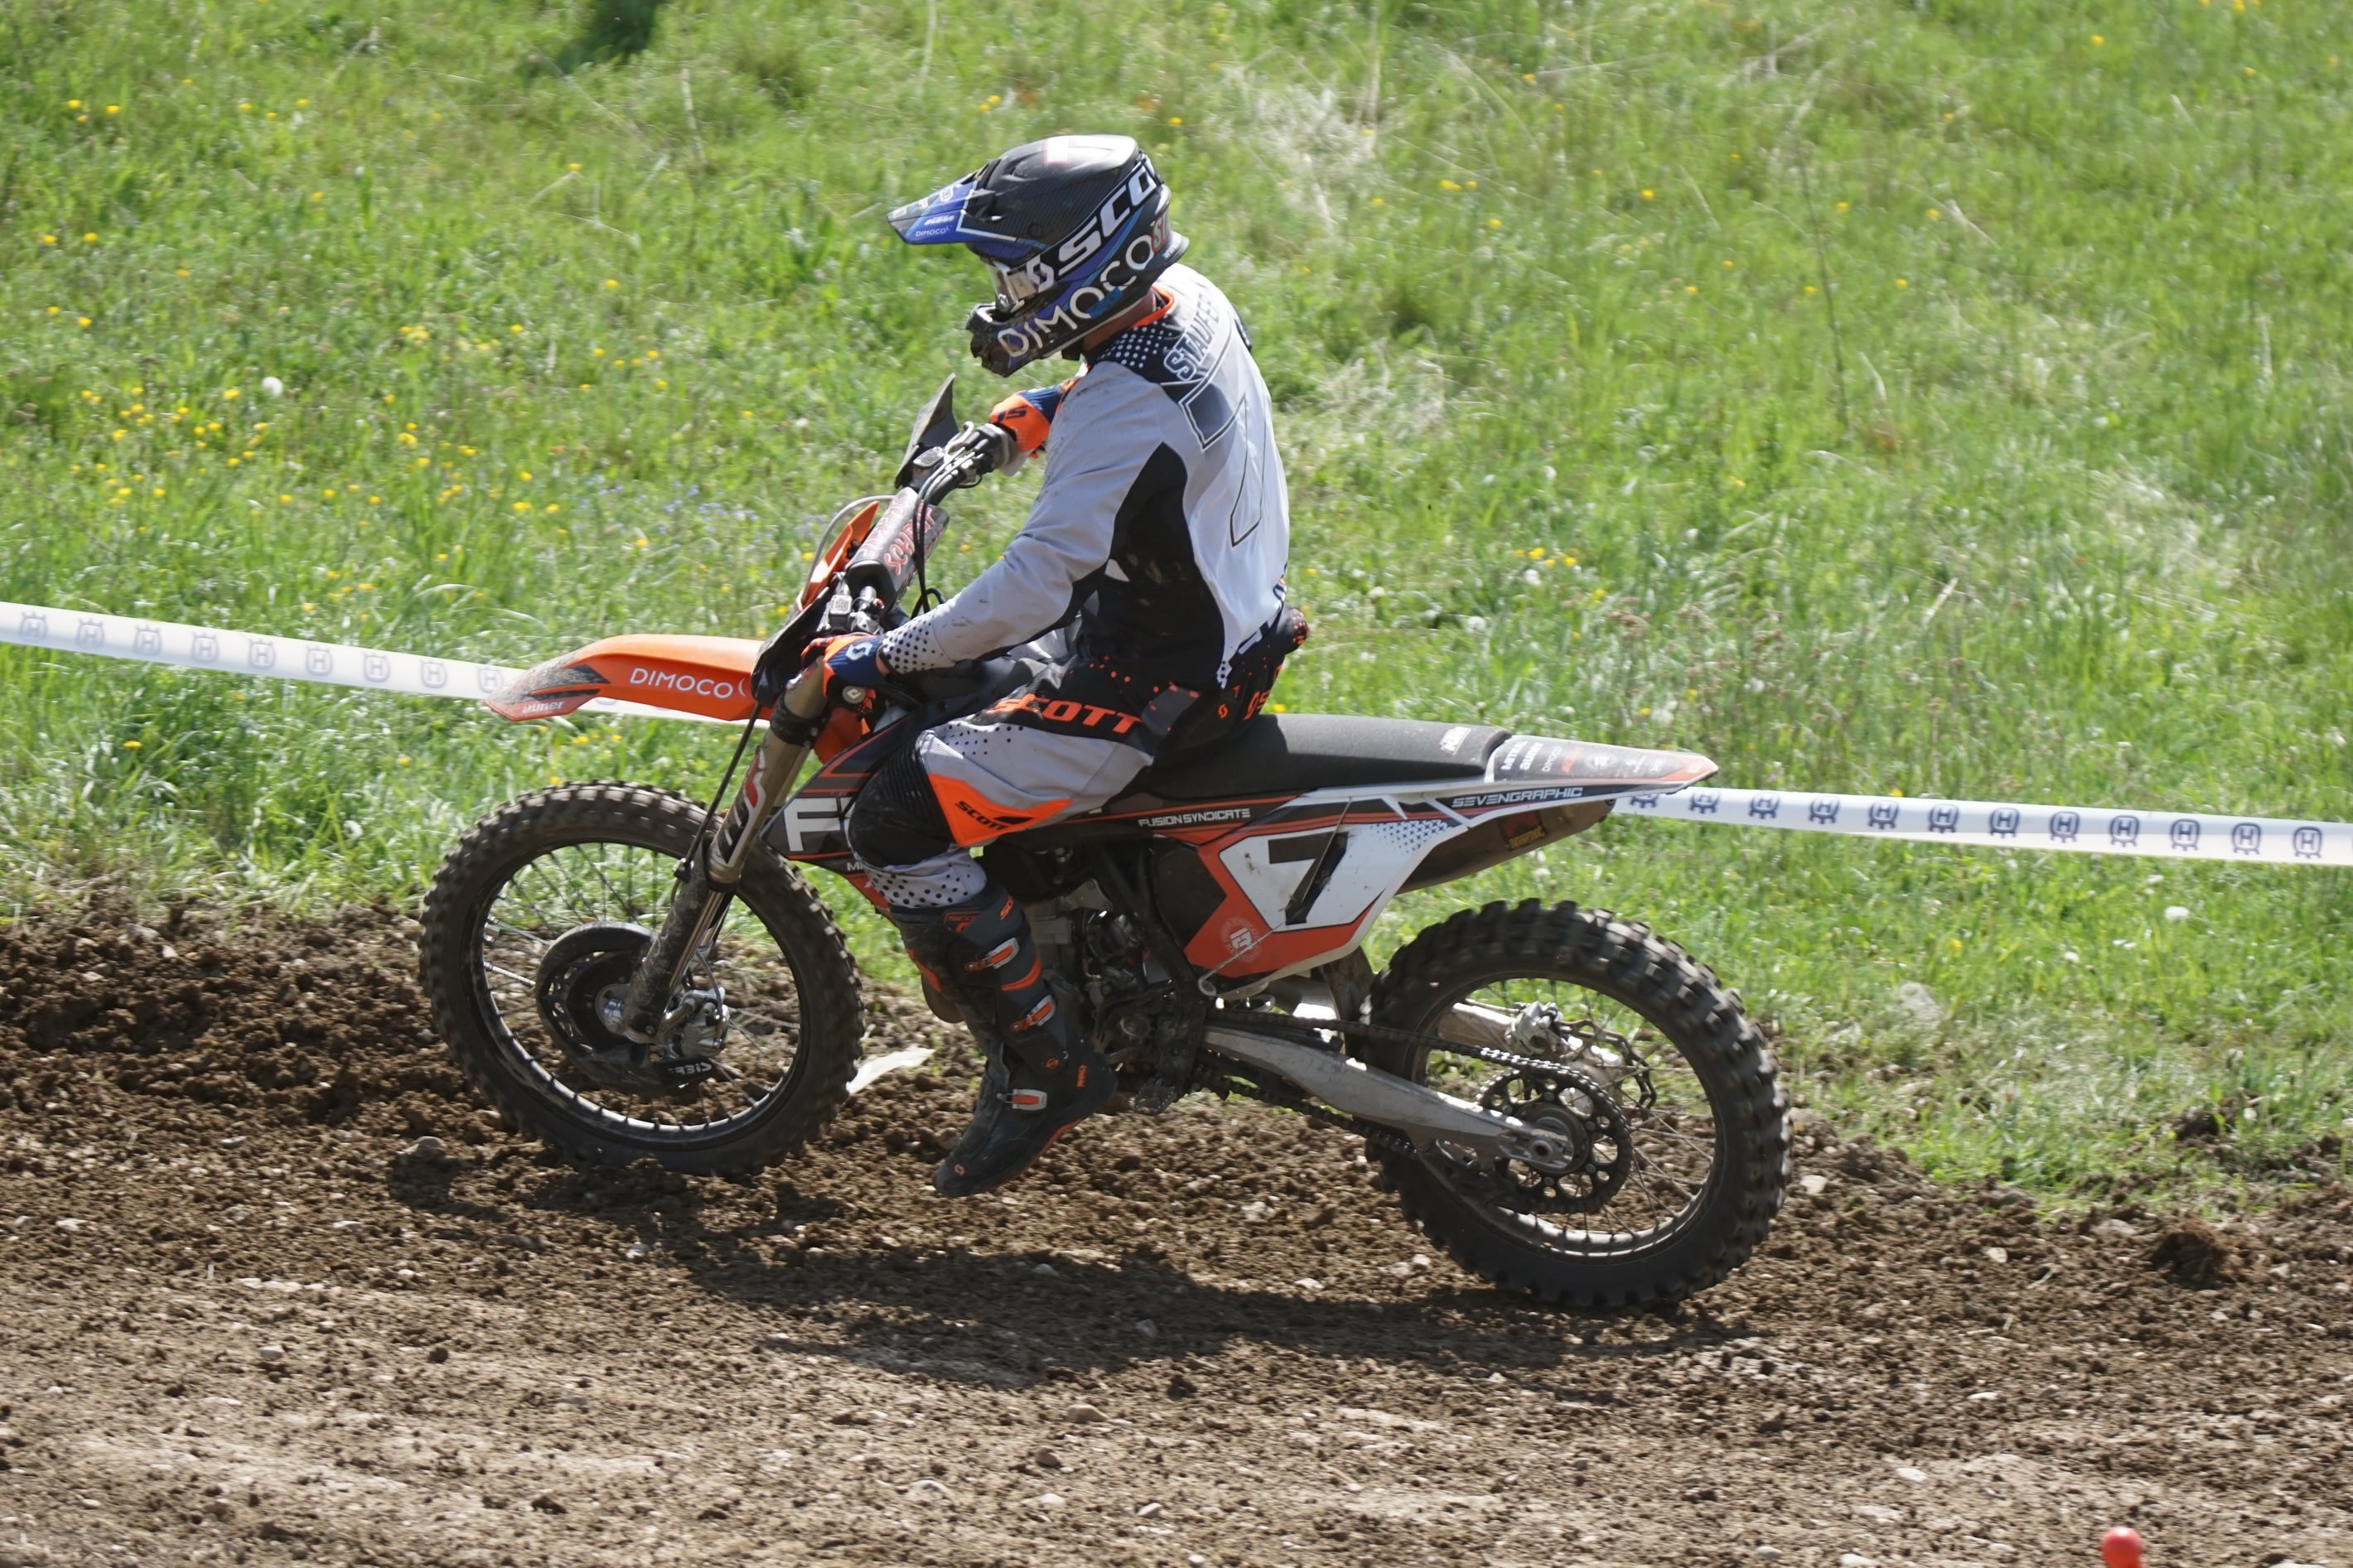 DSC 468_Moto Cross Sittendorf Teil1 am 29.04.2018